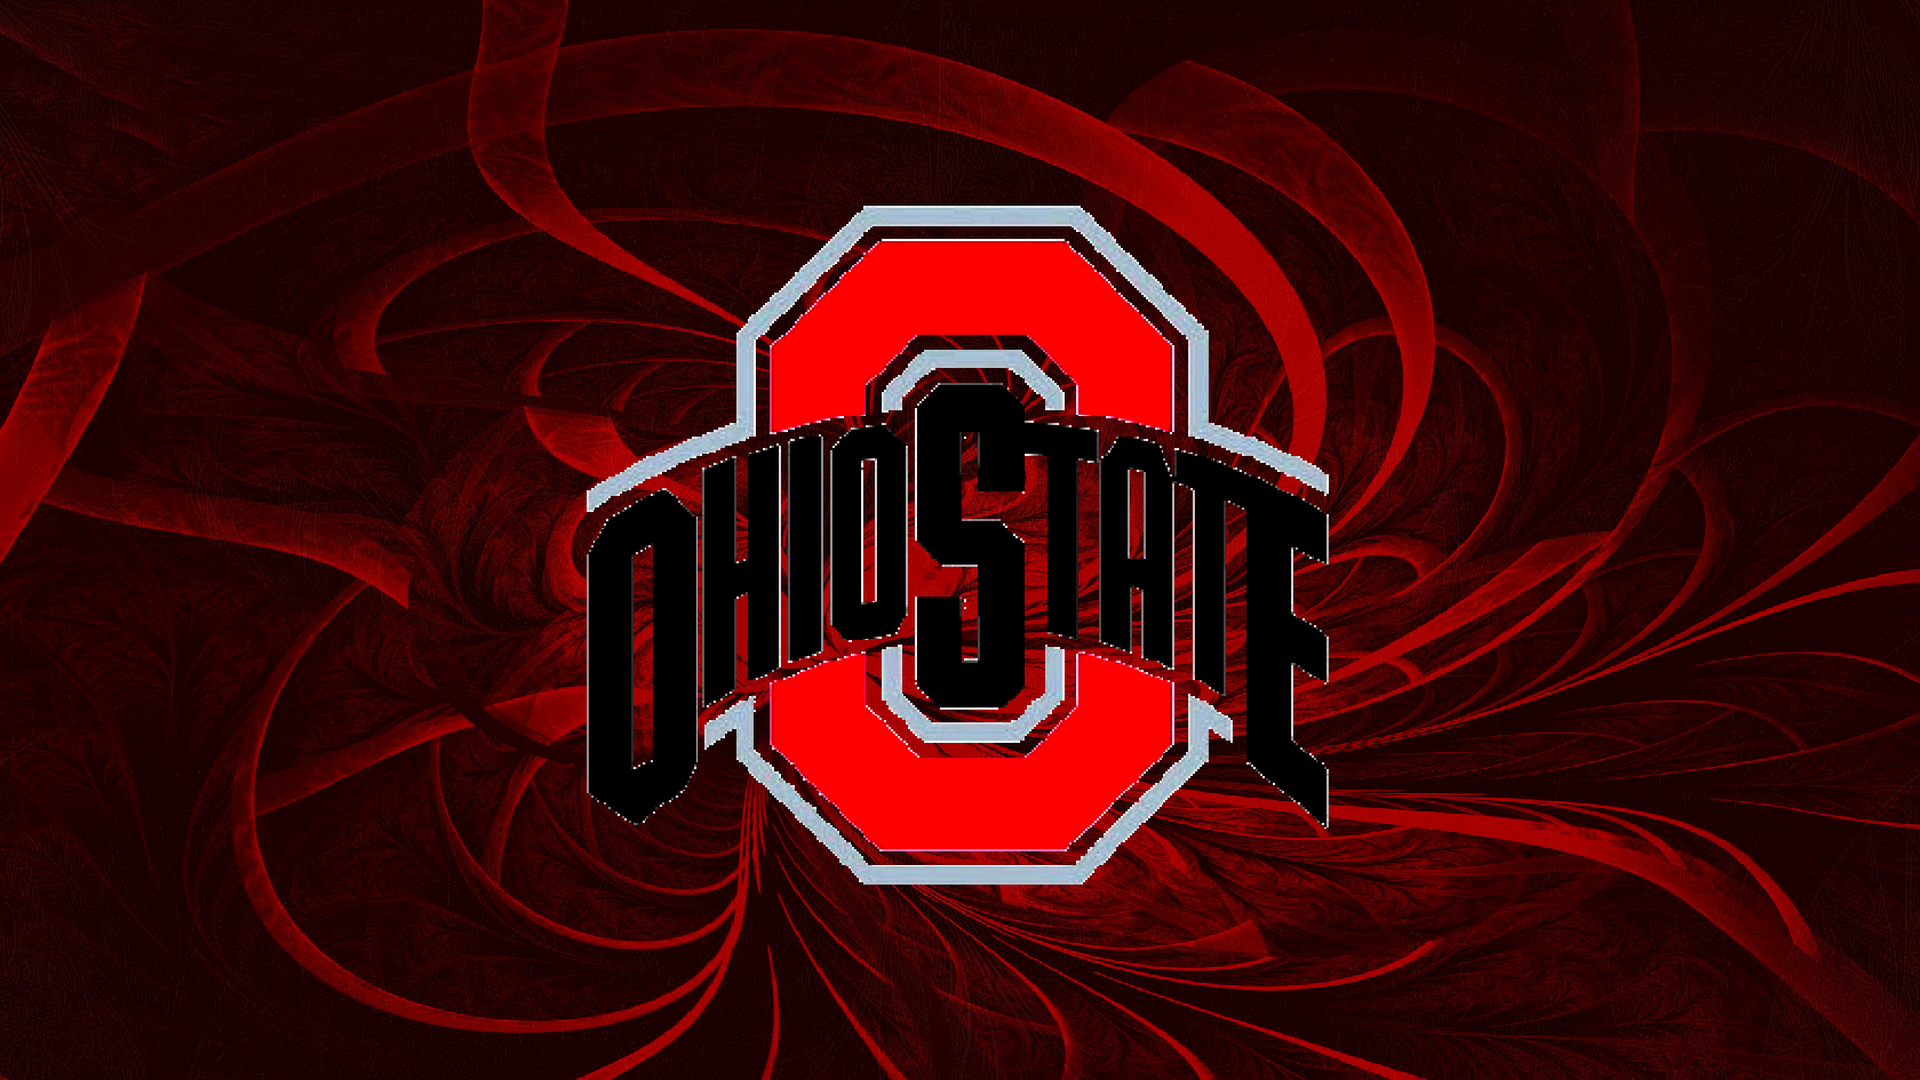 Ohio State Logo Wallpaper: Ohio State Buckeyes Backgrounds